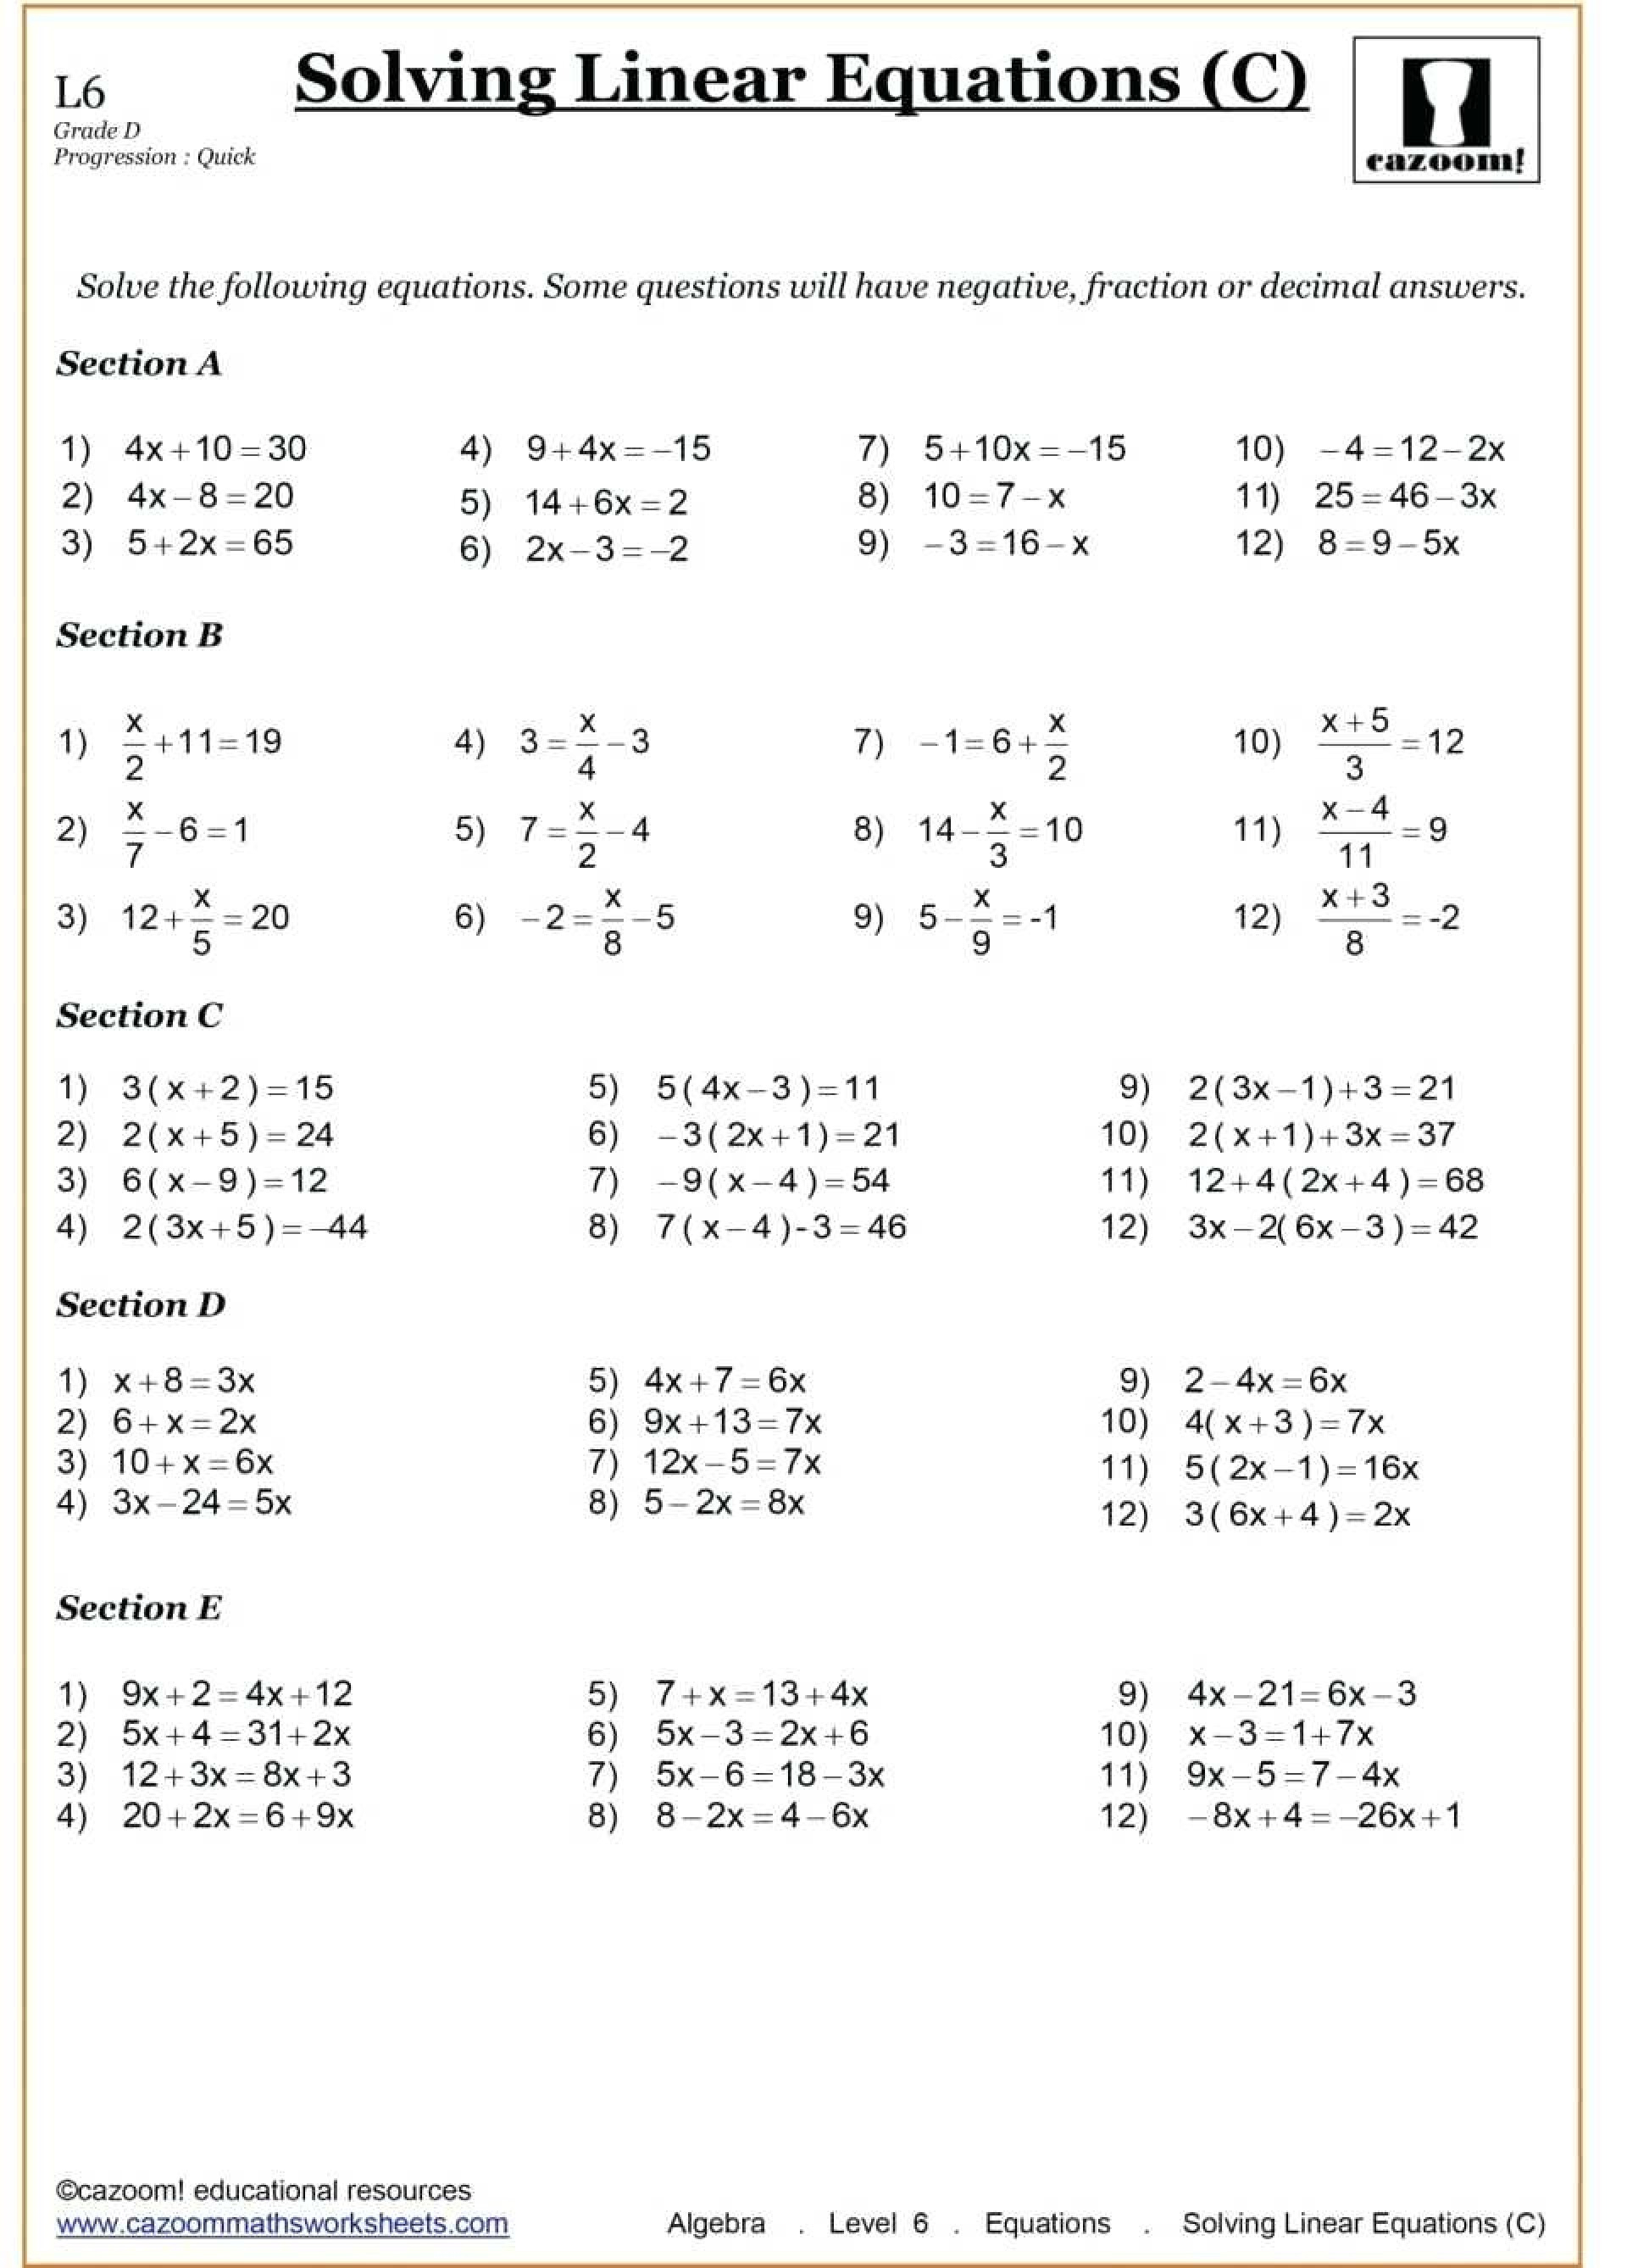 026 Adding And Subtracting Polynomials Coloring Worksheet